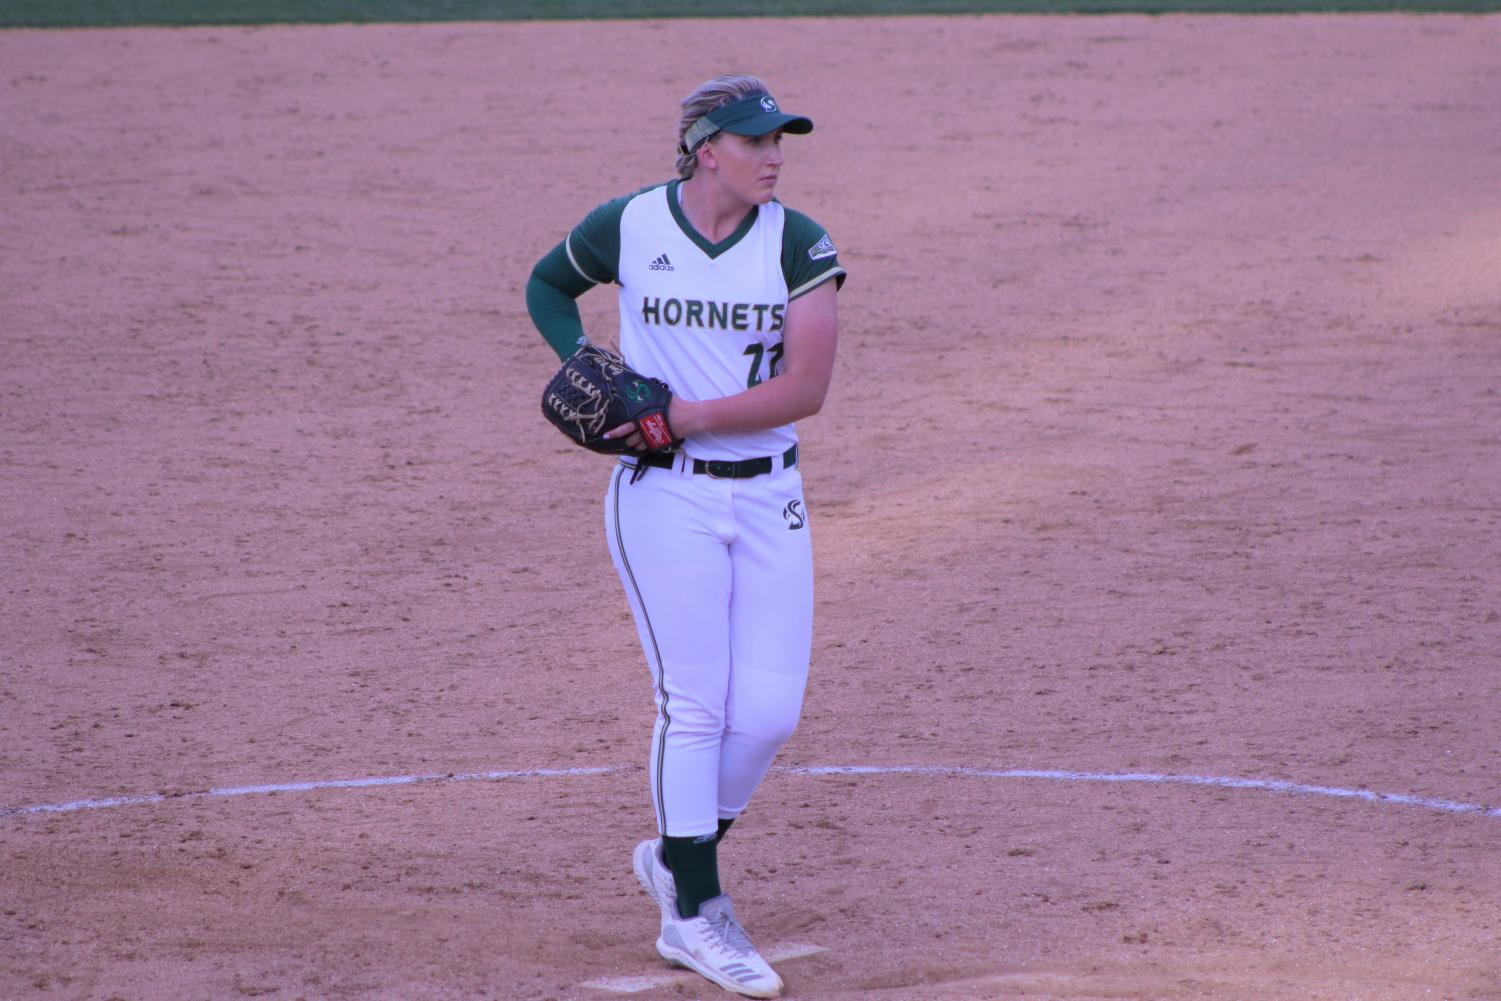 Sac State senior right-handed pitcher Savanna Corr threw her second no-hitter of the season in a 15-0 win over Idaho State in the Big Sky Conference tournament.